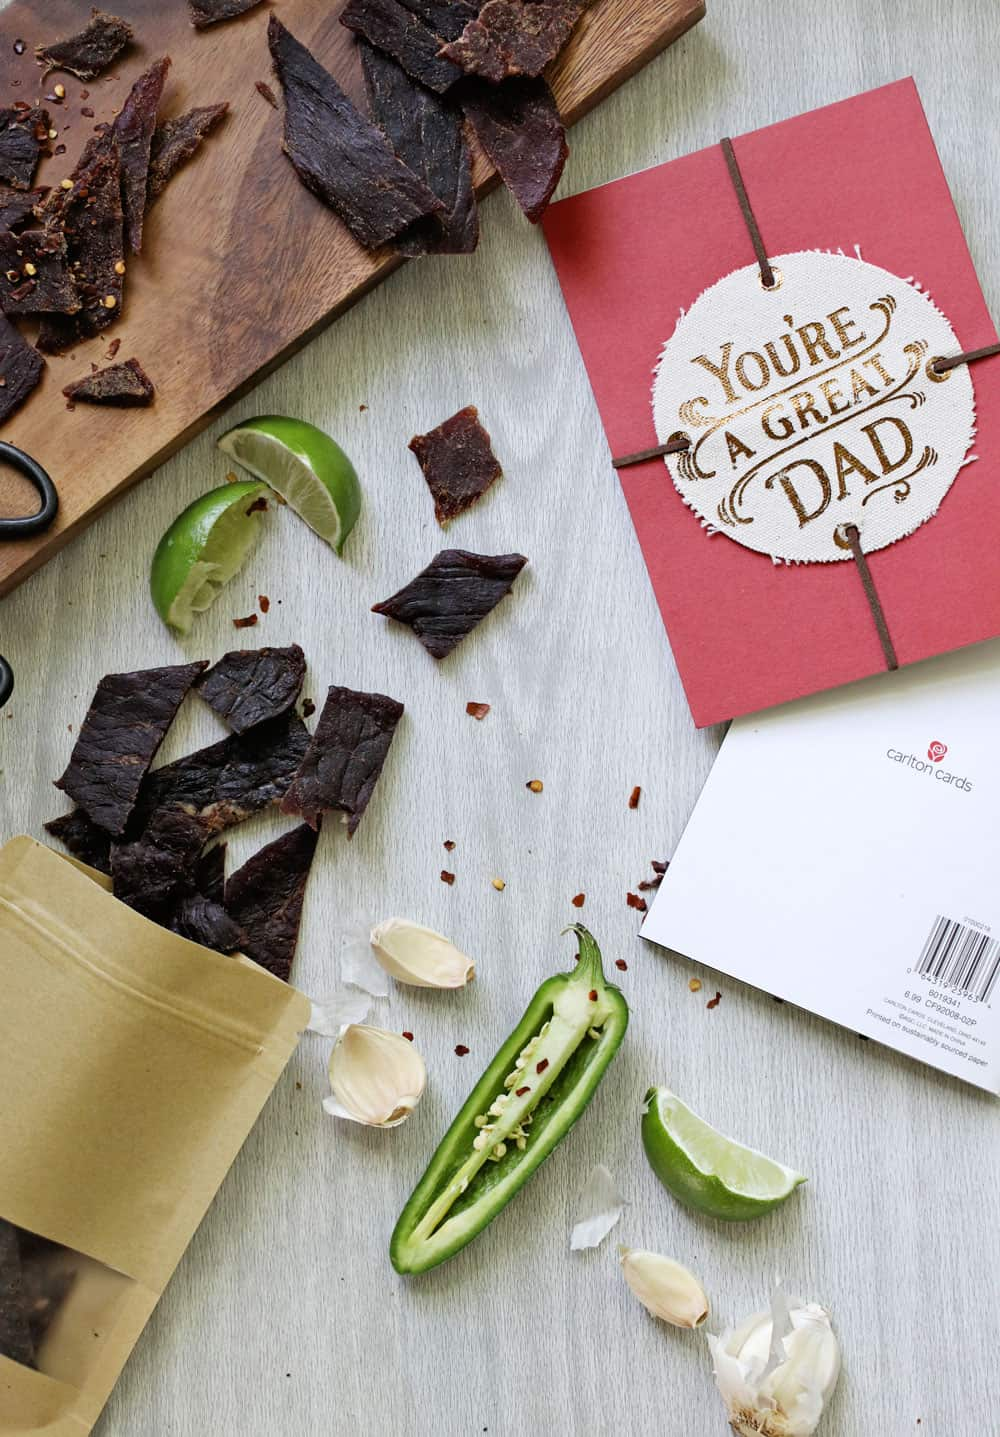 The Perfect Father's Day Gift: Homemade Jerky 3 Ways